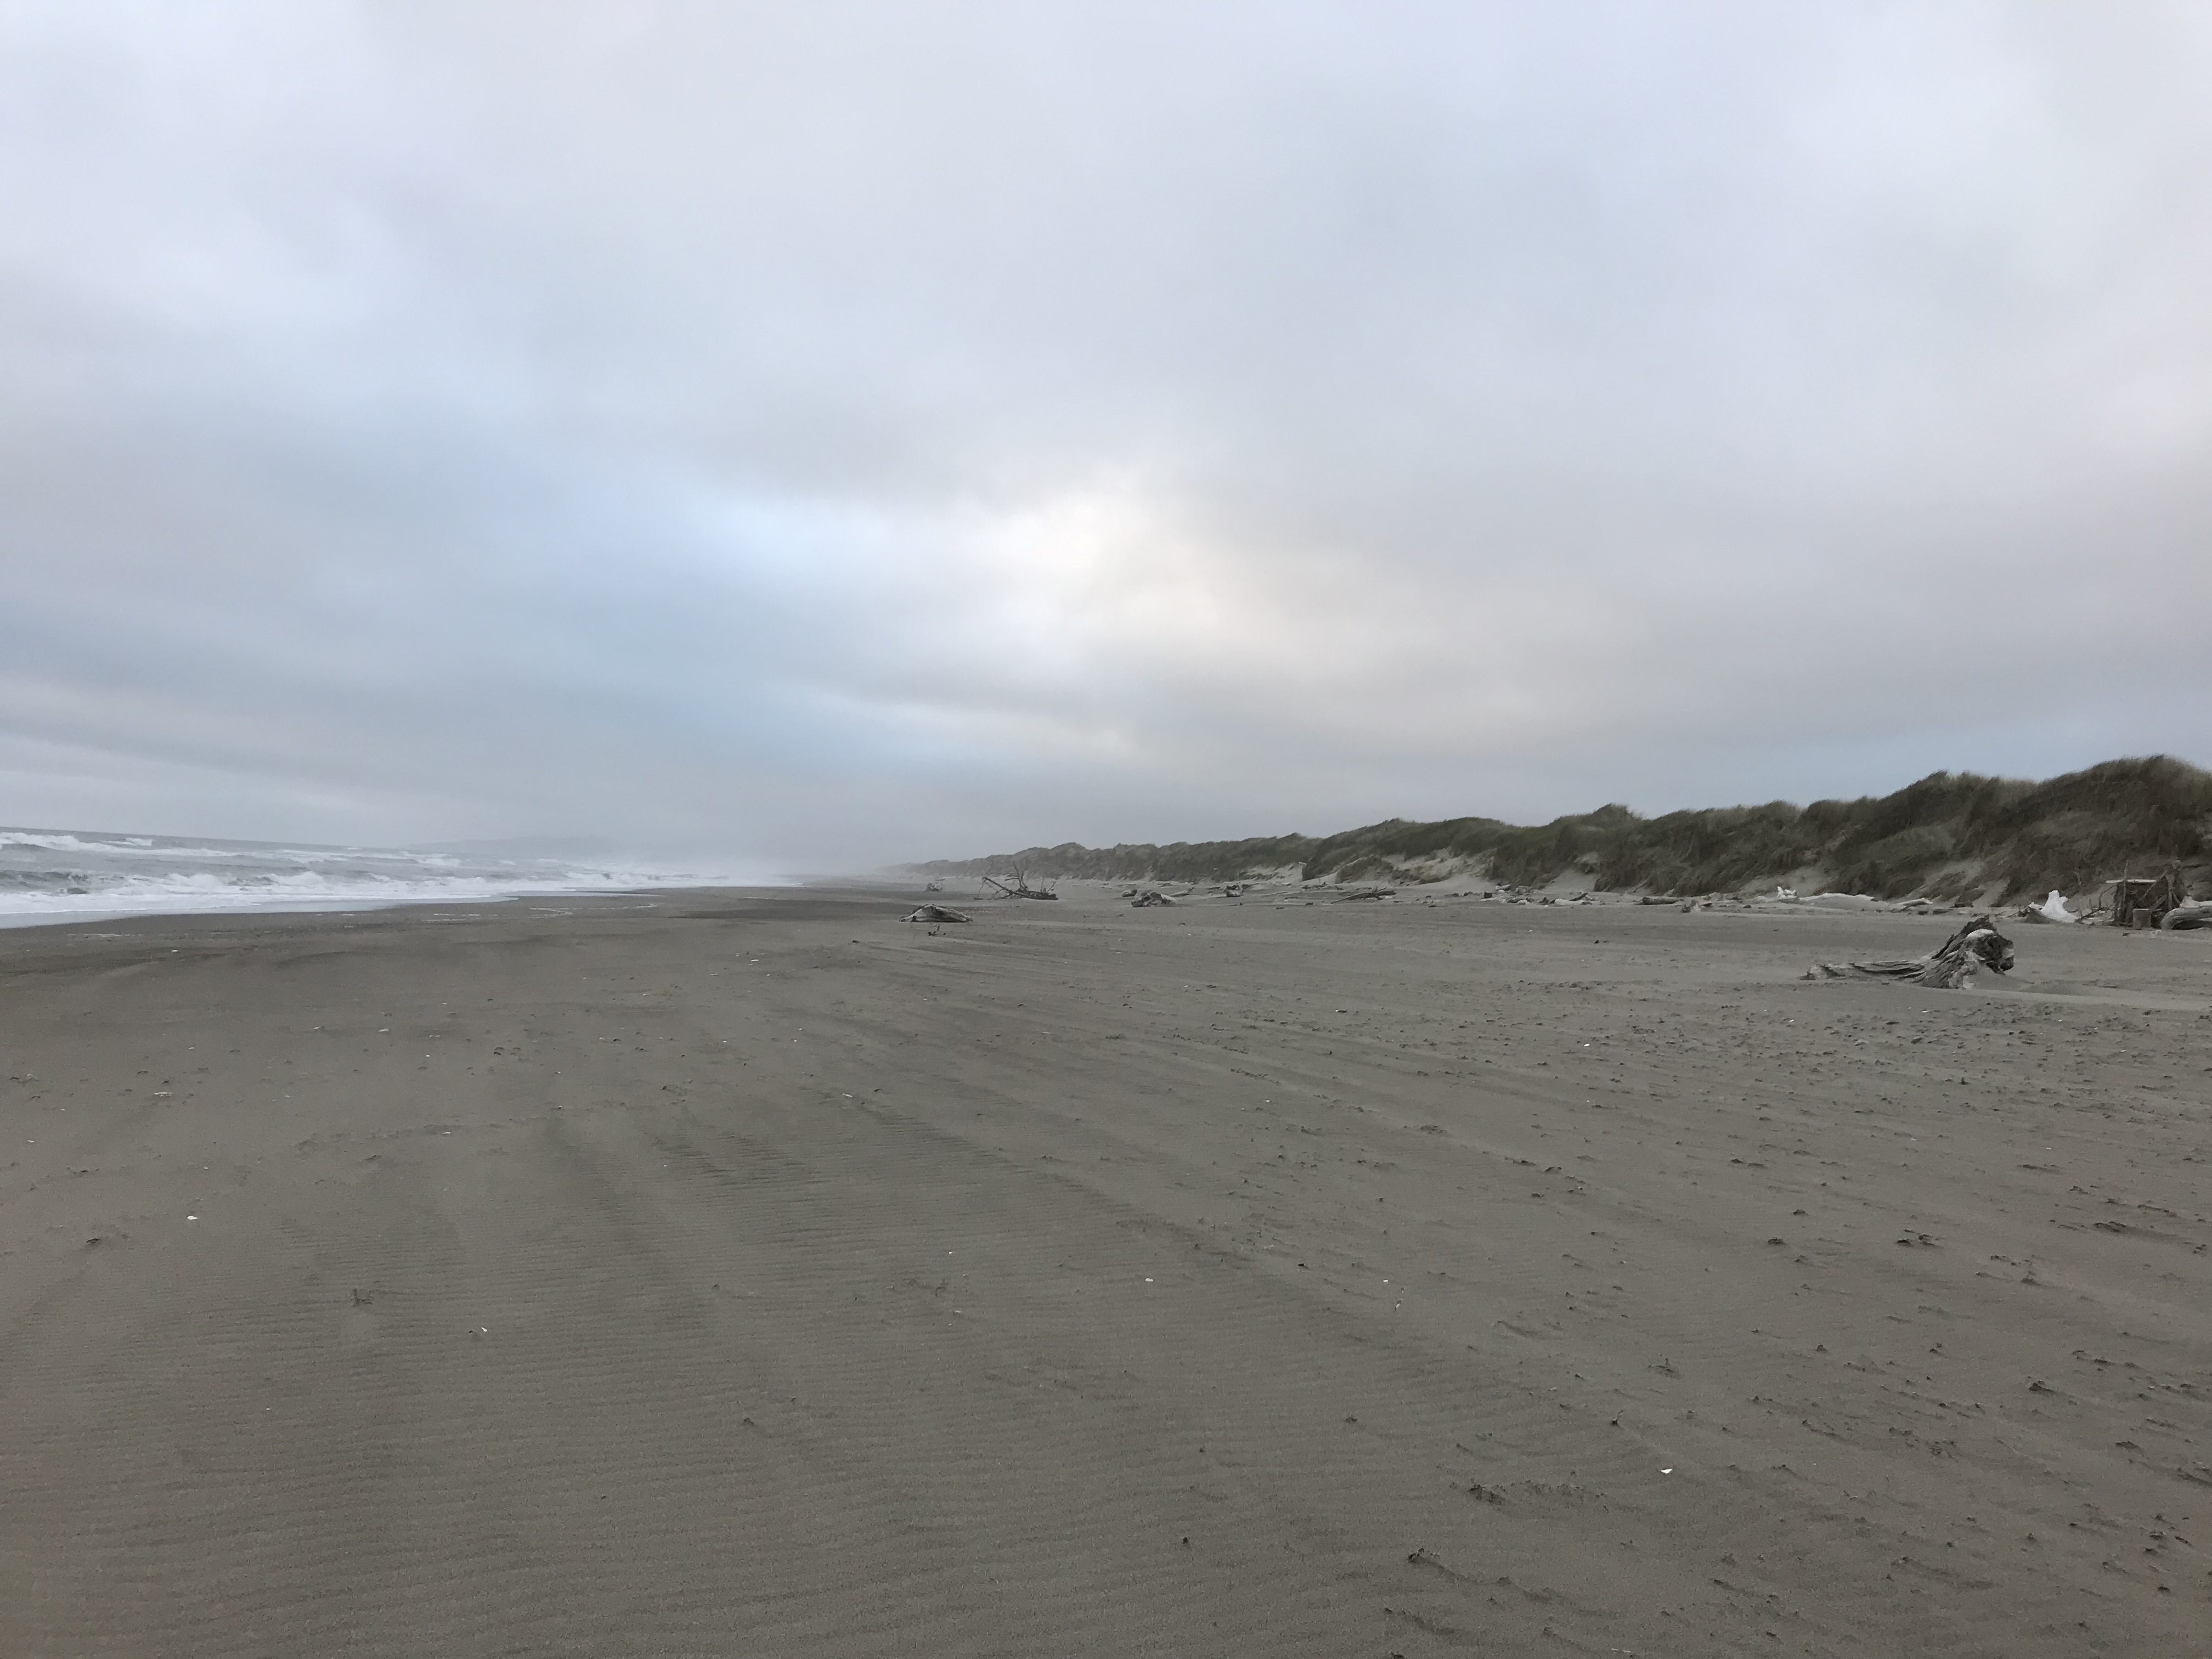 The empty coast in Oregon; the sky is gray and cloudy, and the beach is very clean and empty.